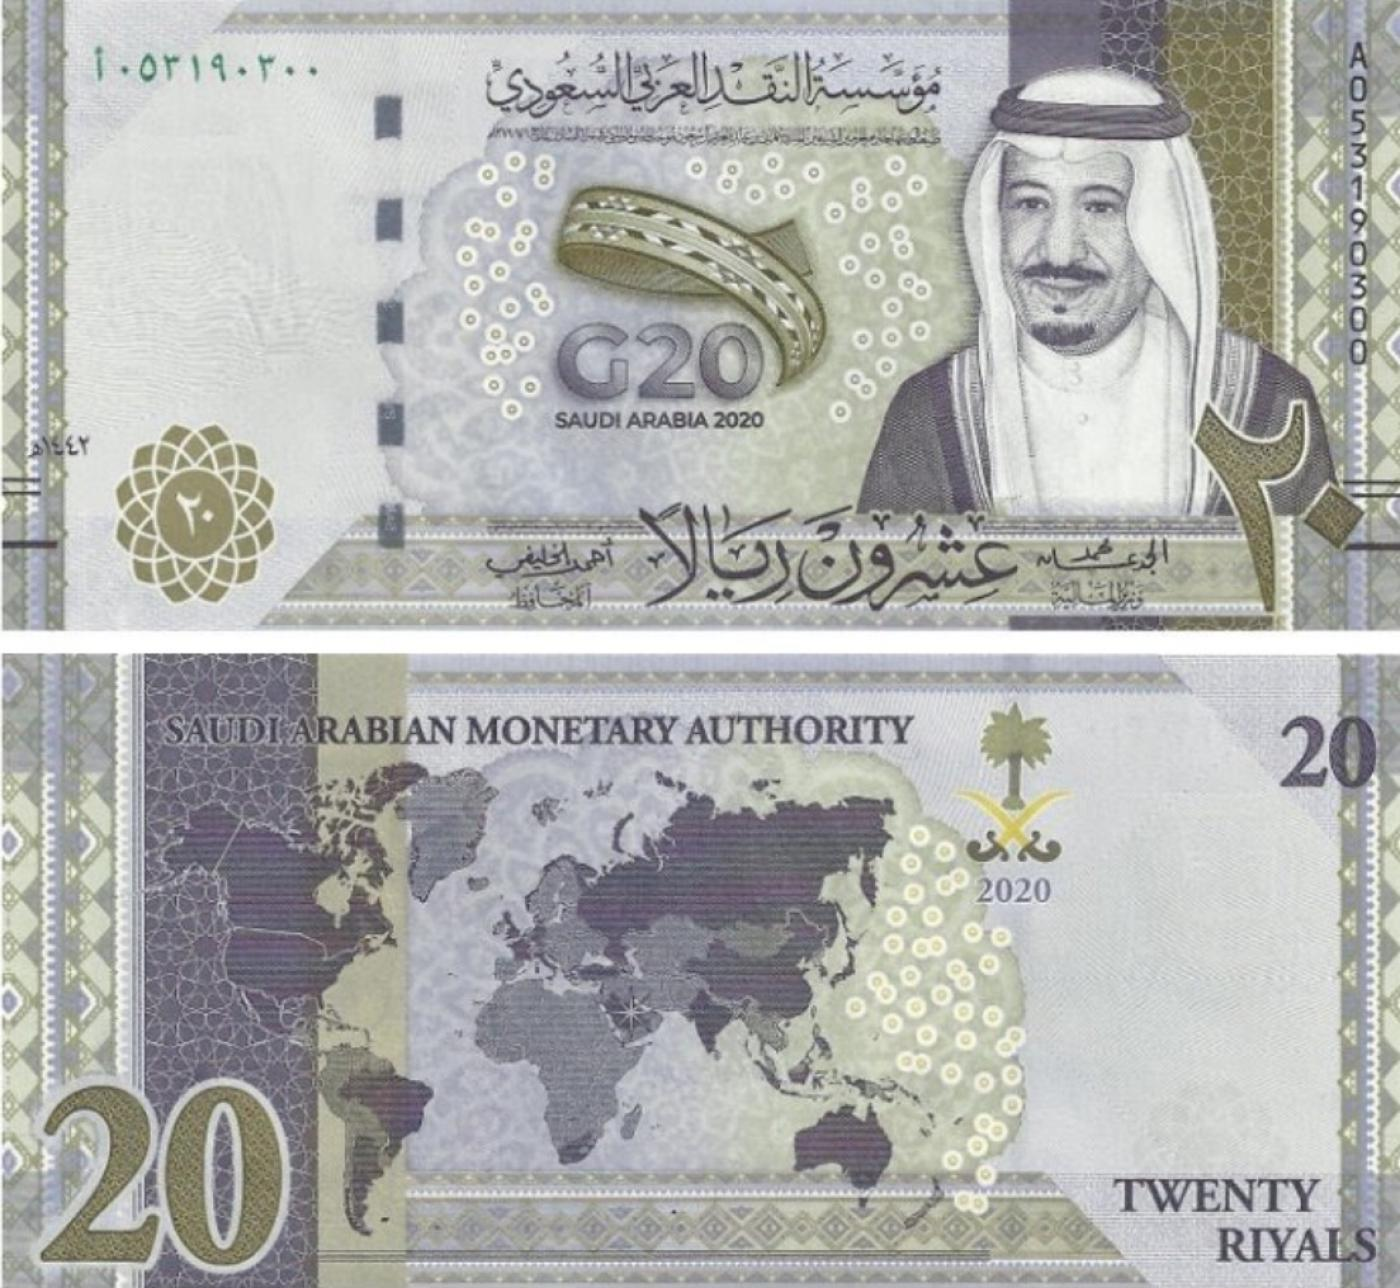 The bank note has caused controversy online (Screengrab/Social media)